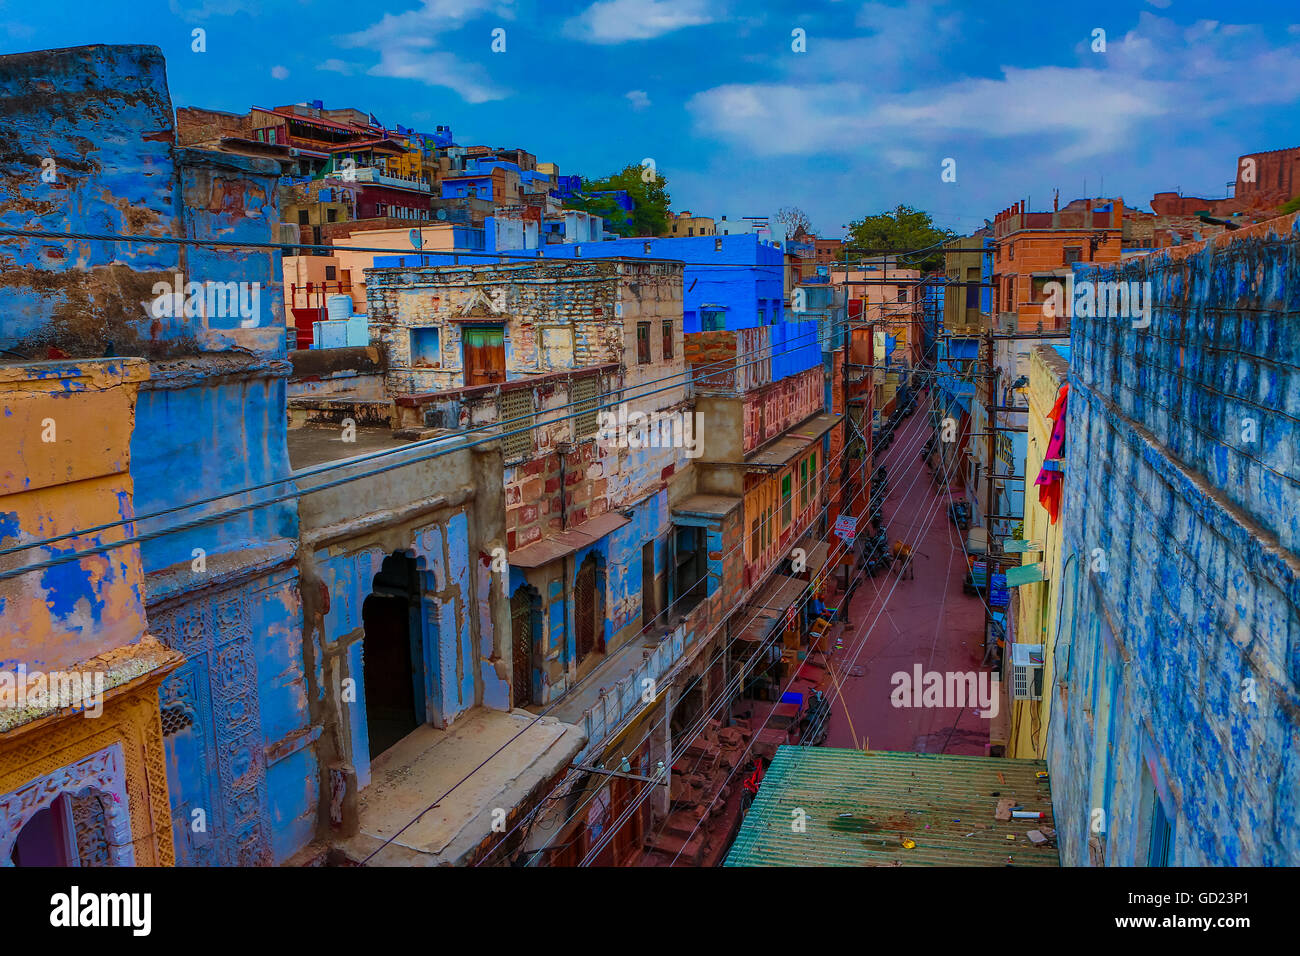 The blue rooftops in Jodhpur, the Blue City, Rajasthan, India, Asia - Stock Image